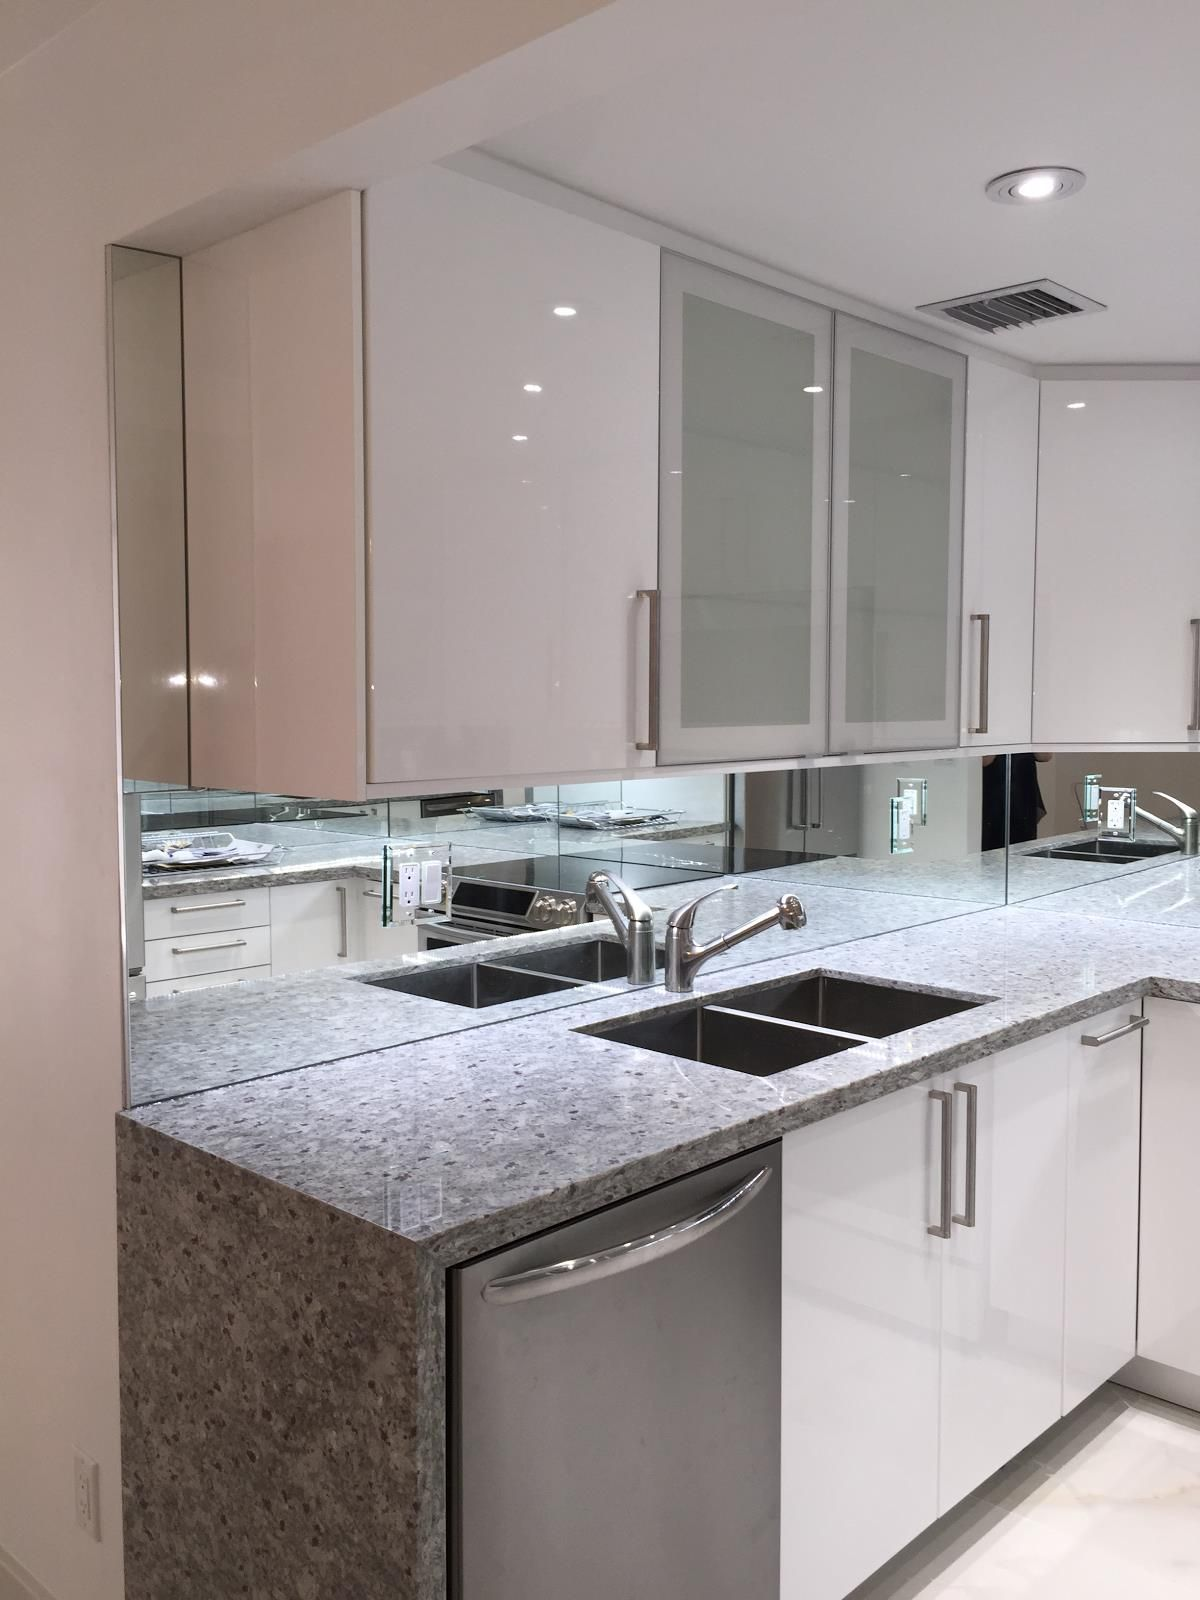 Best This Ikea Kitchen Is A Small Wonder Thanks To Ikd Magic 400 x 300